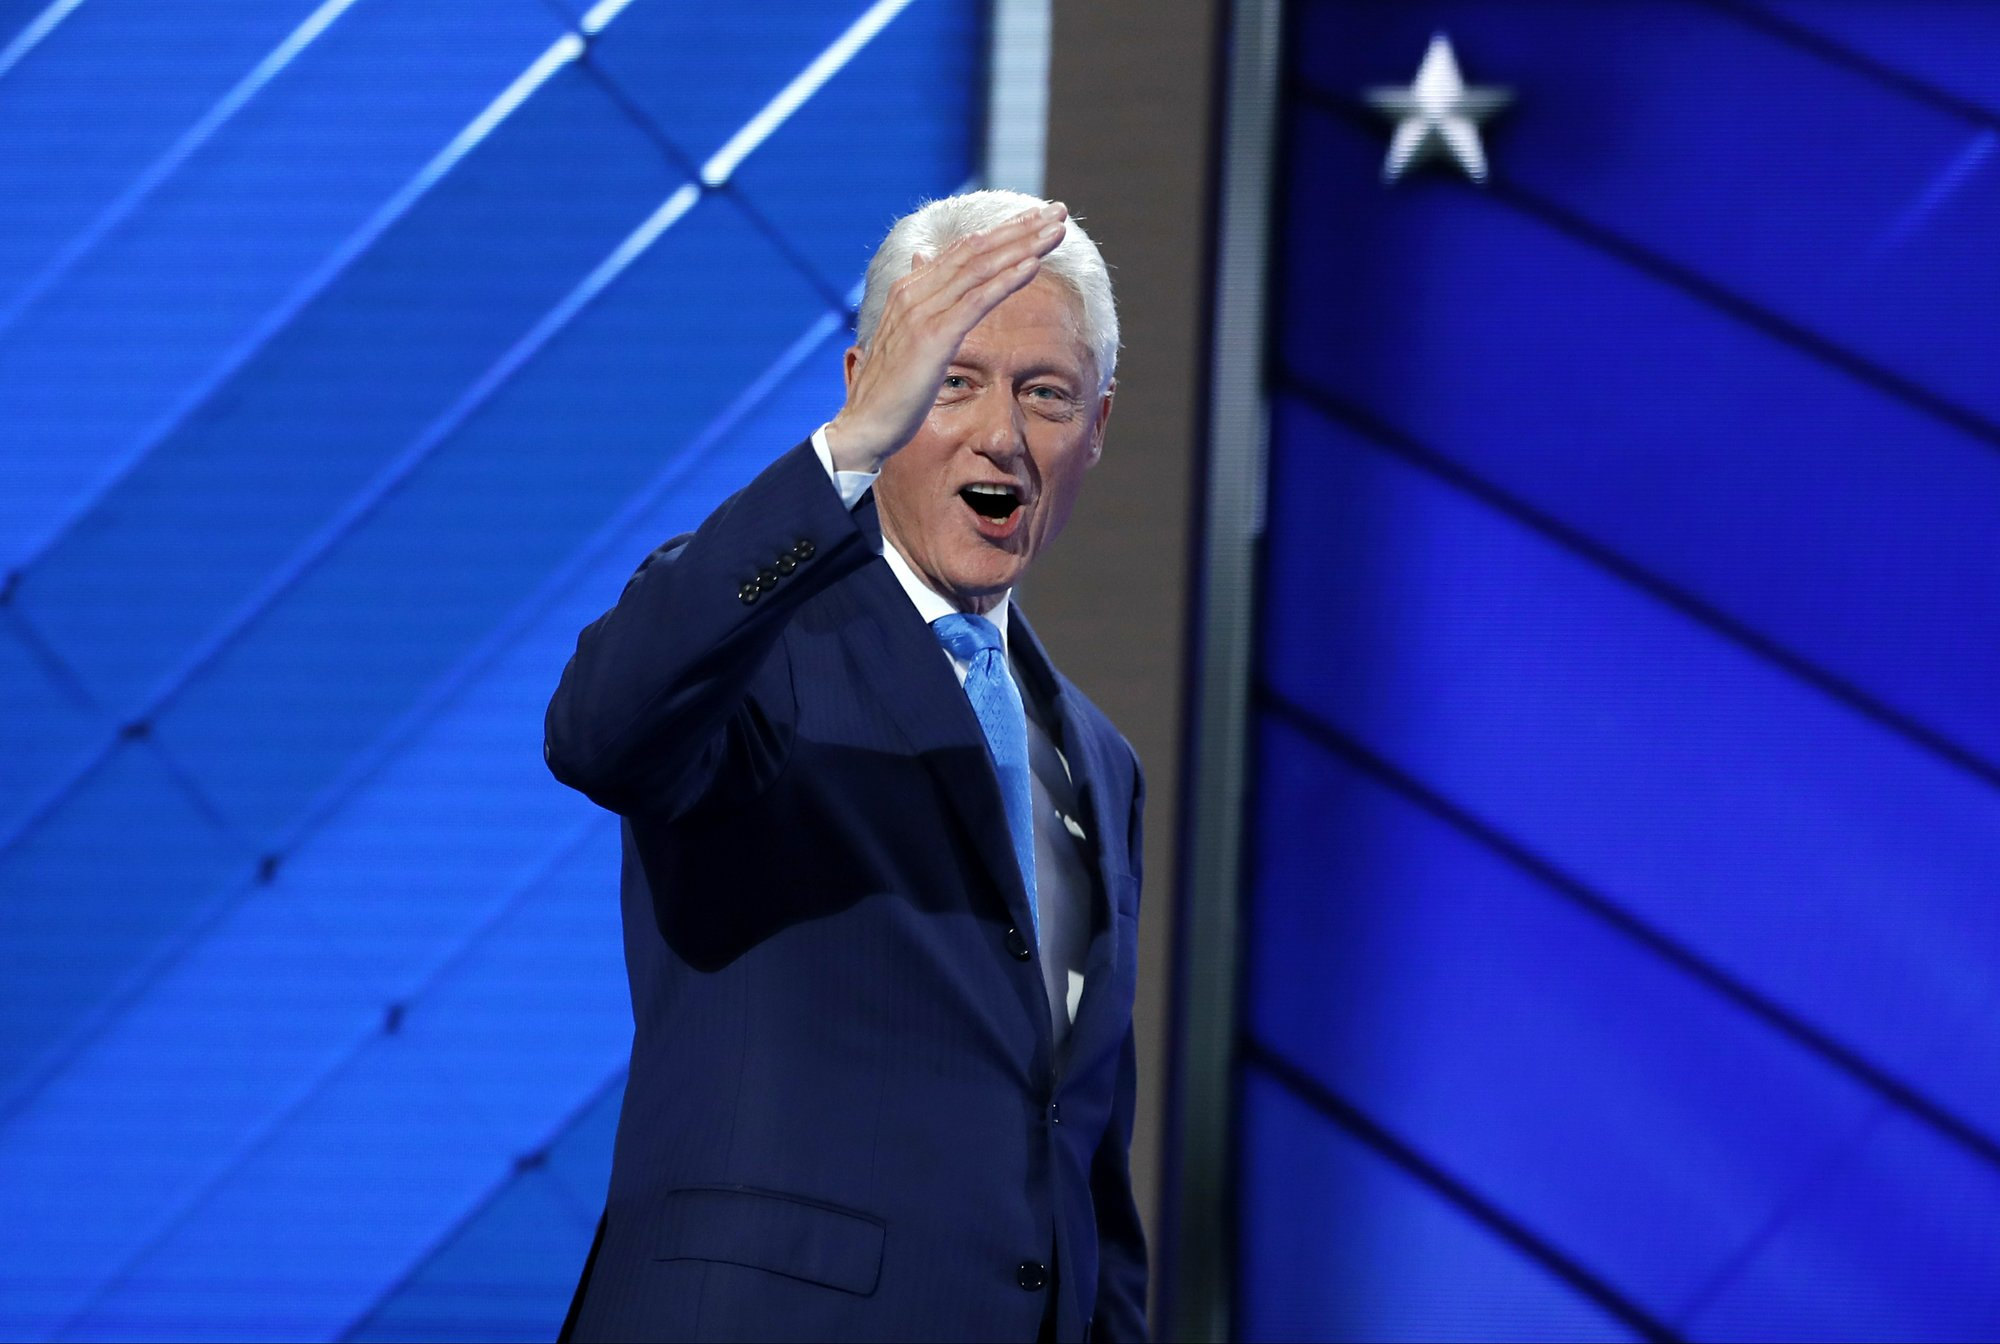 Bill Clinton Tells the Story of His Meet-Cute With Hillary Clinton at the DNC